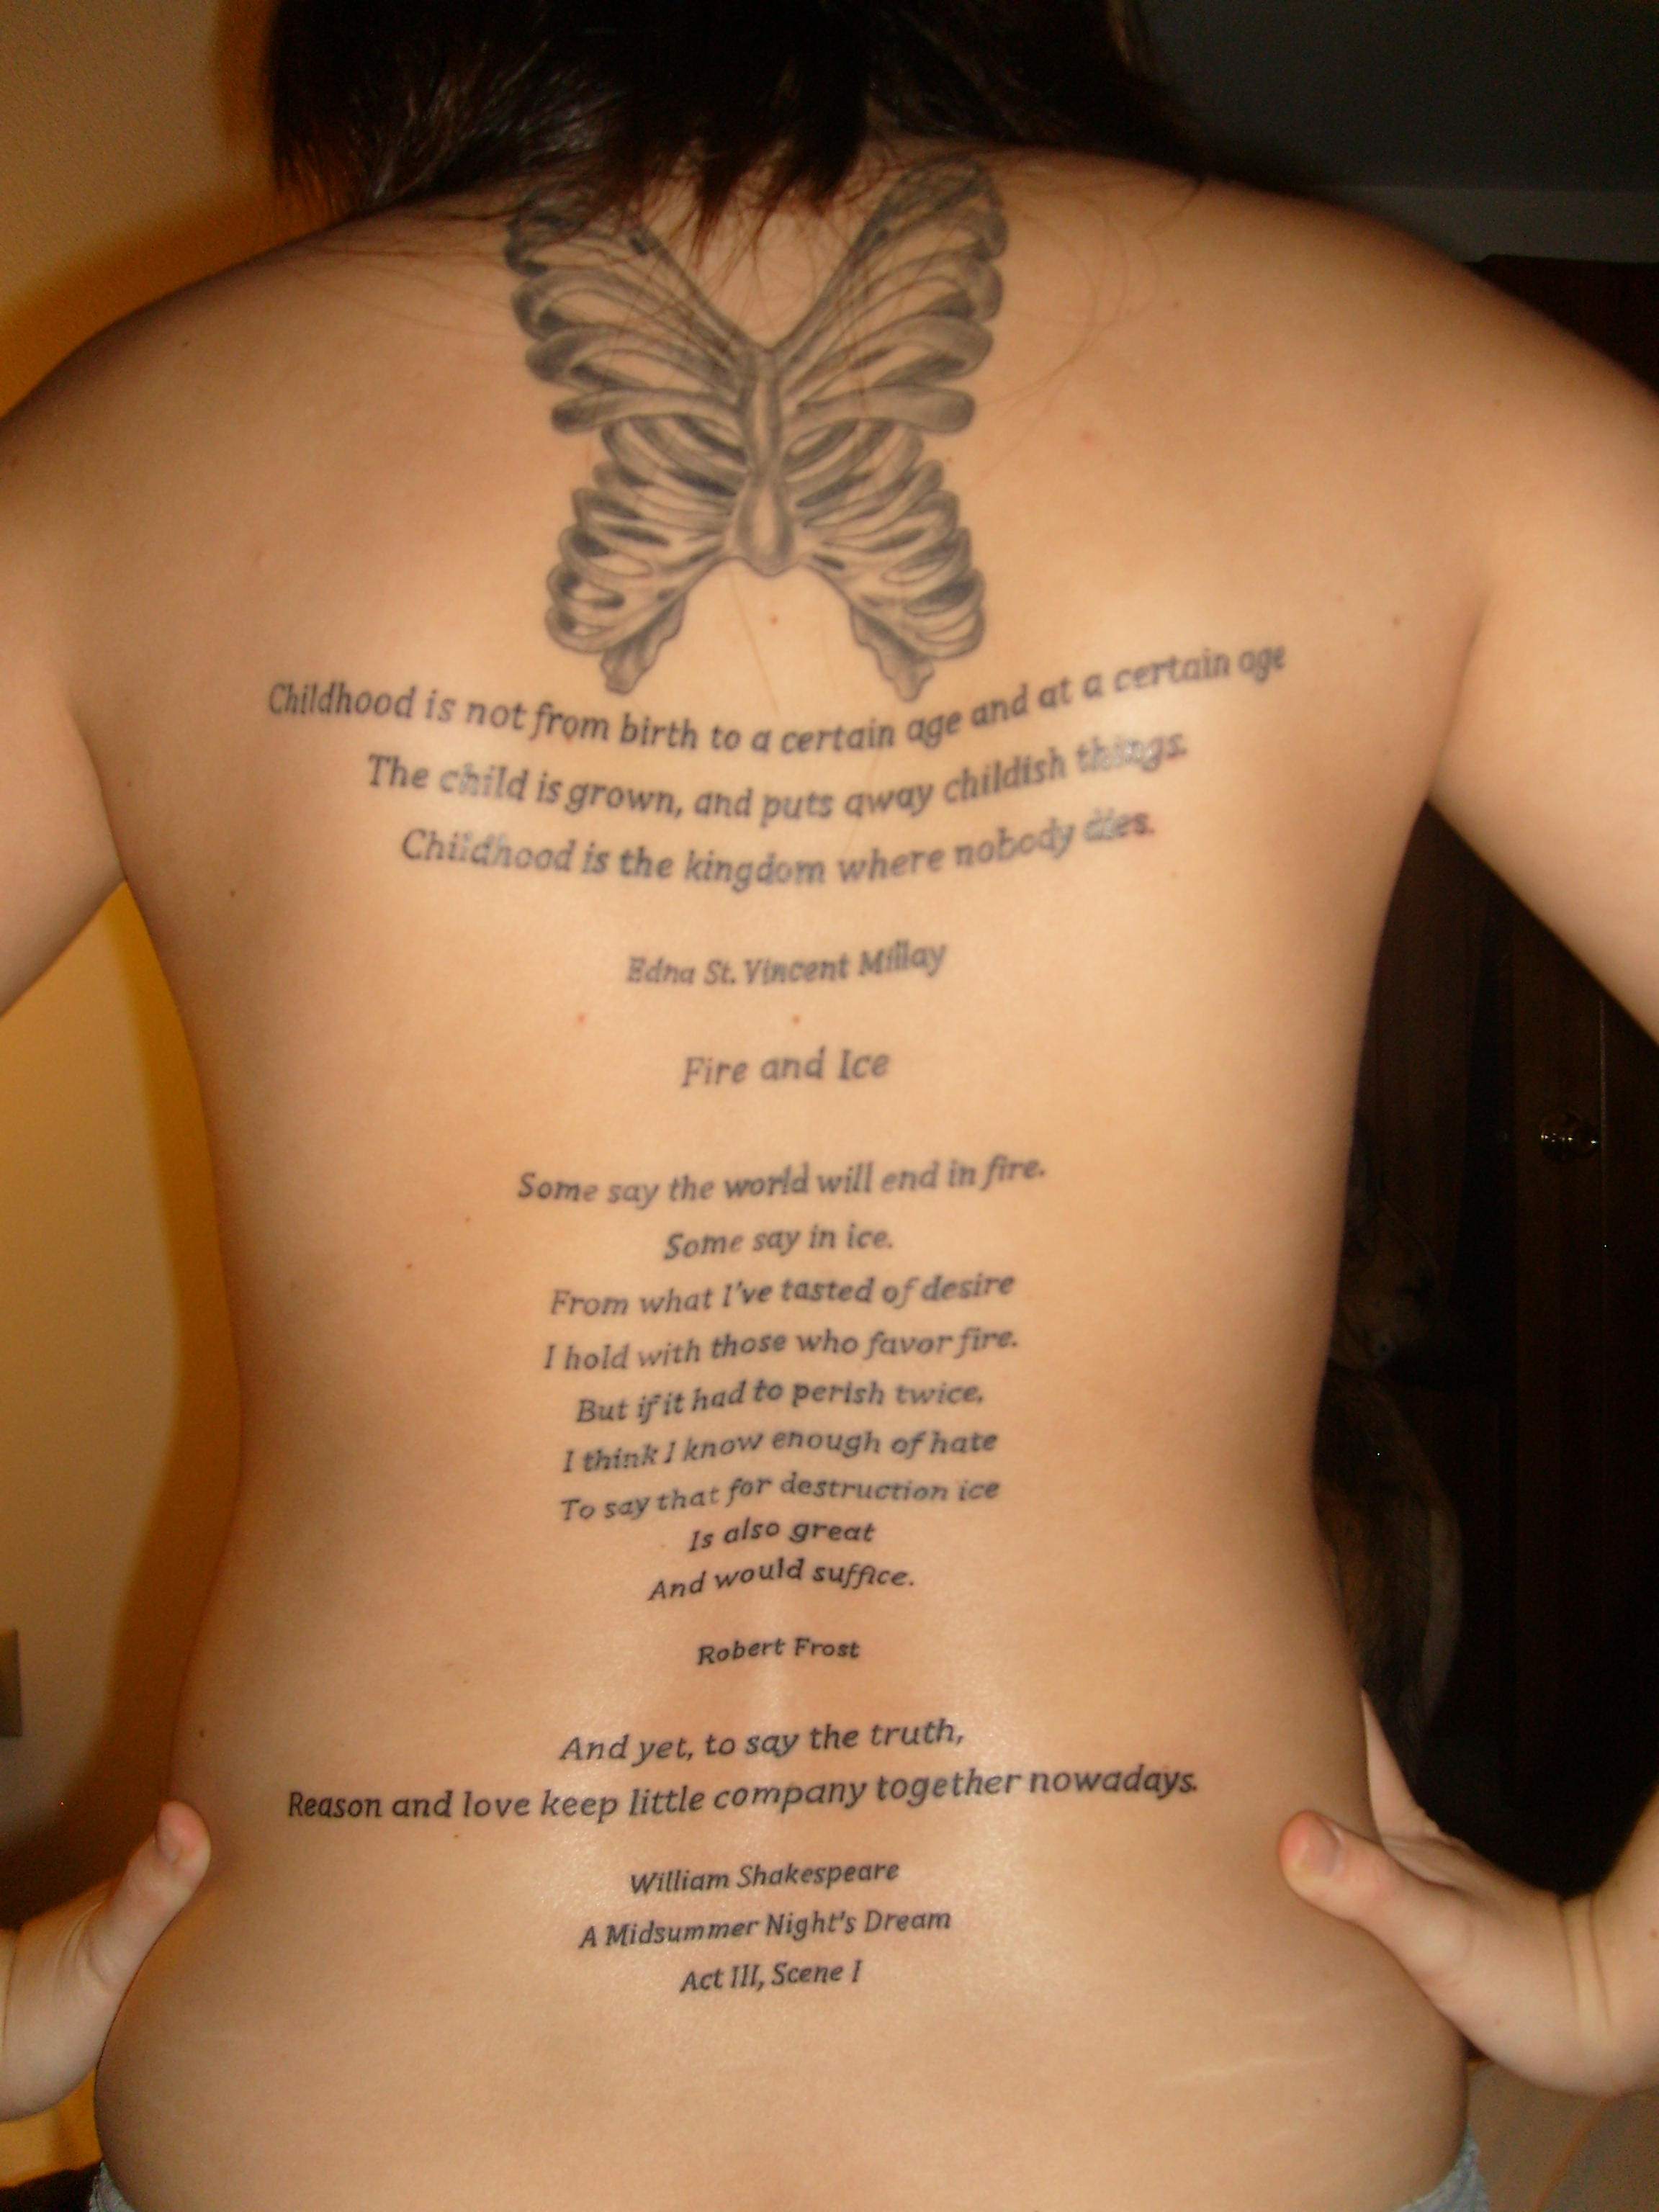 Tattoos Quotes For Chest Ideas - Power Of Now Tattoo , HD Wallpaper & Backgrounds